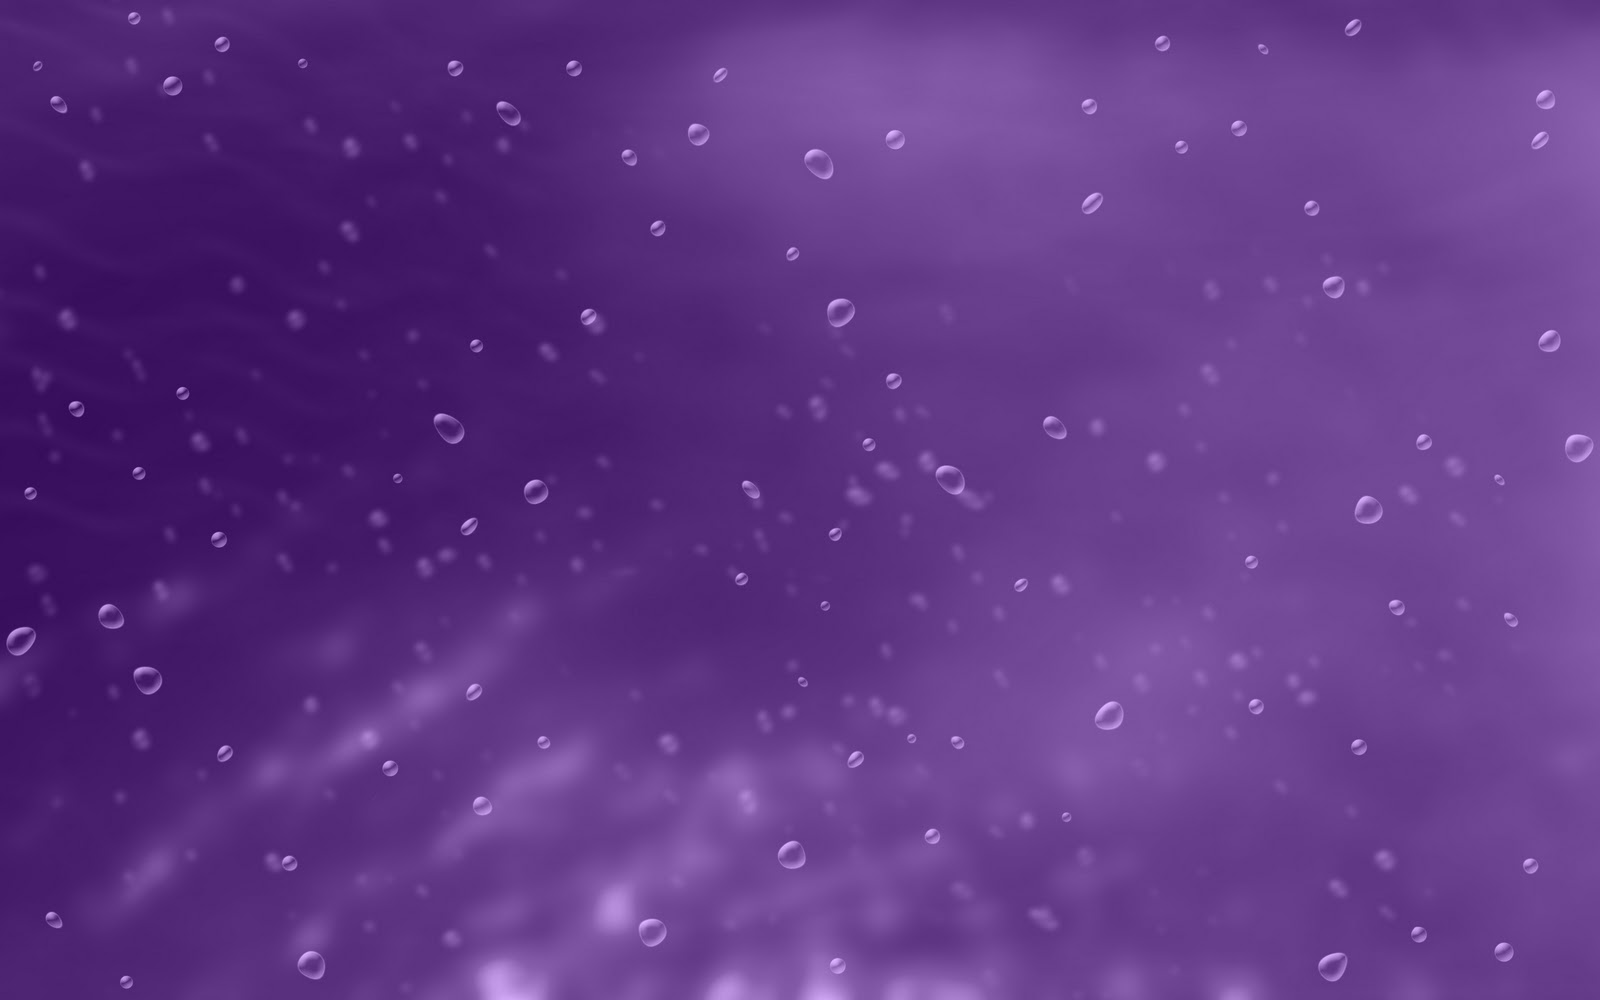 deep purple textured wallpaper - photo #31